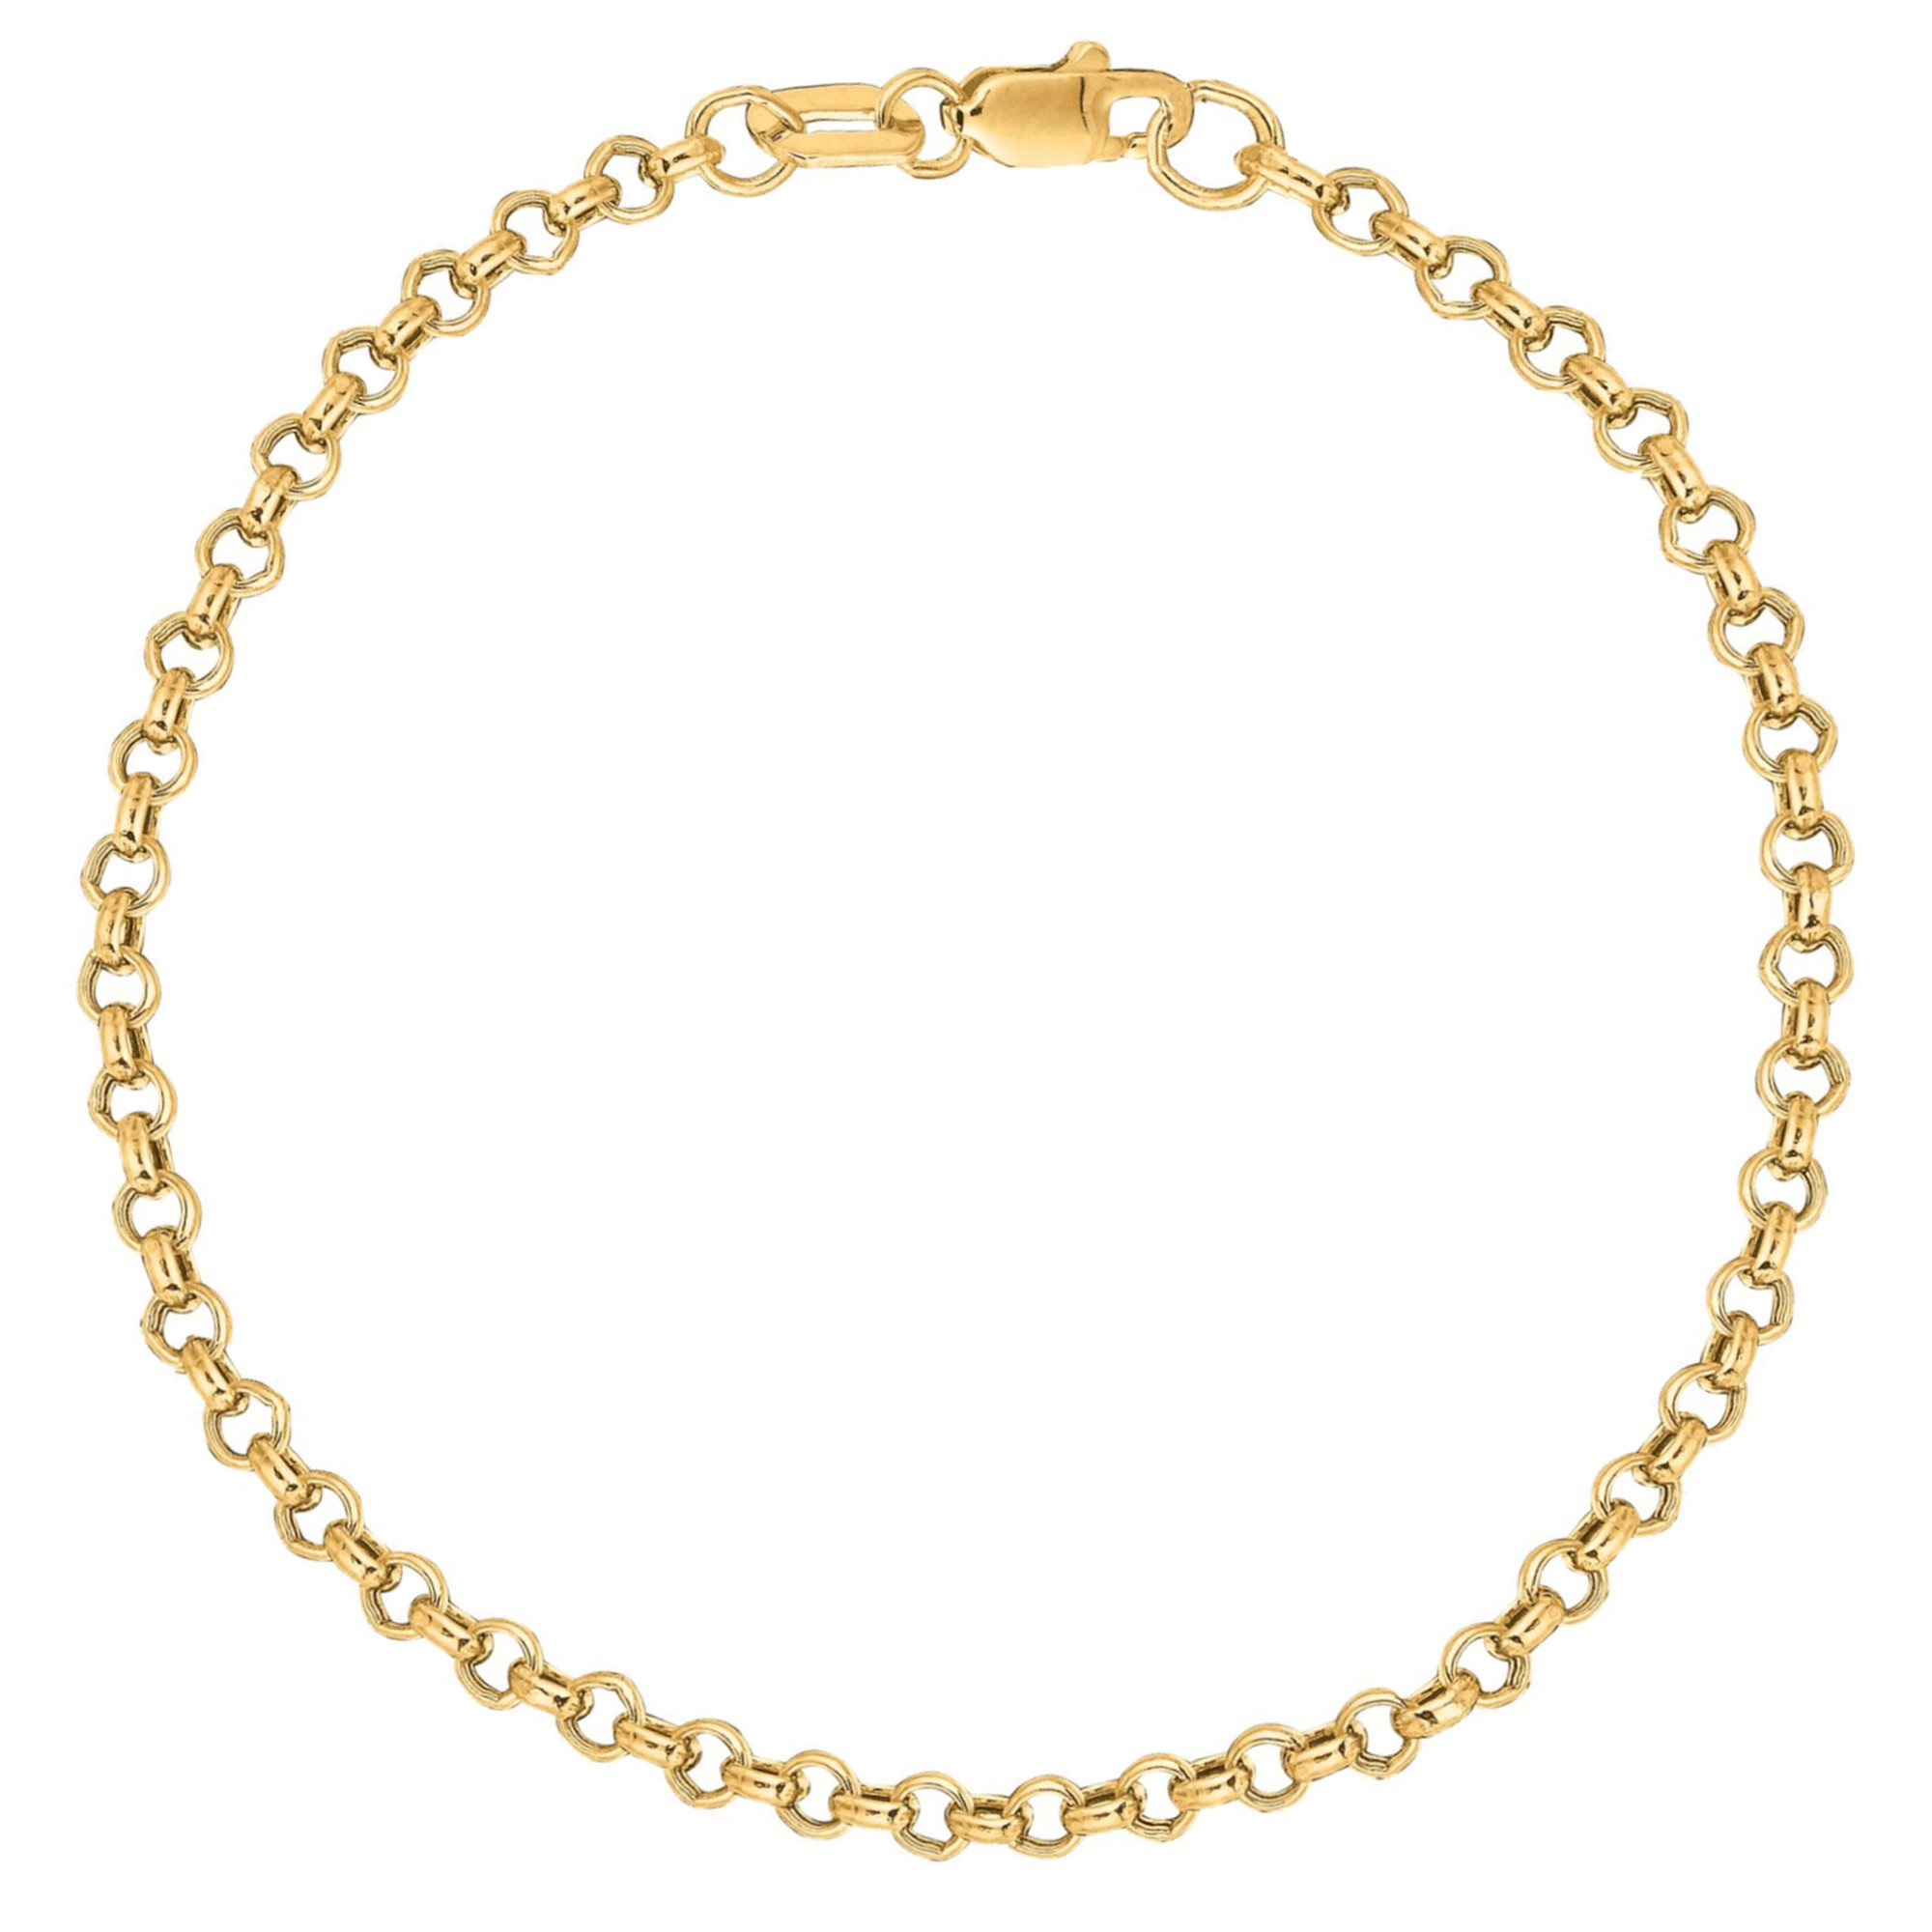 14K Solid Yellow Gold Rolo Link Chain Bracelet 7 Inches 2.3 Mm